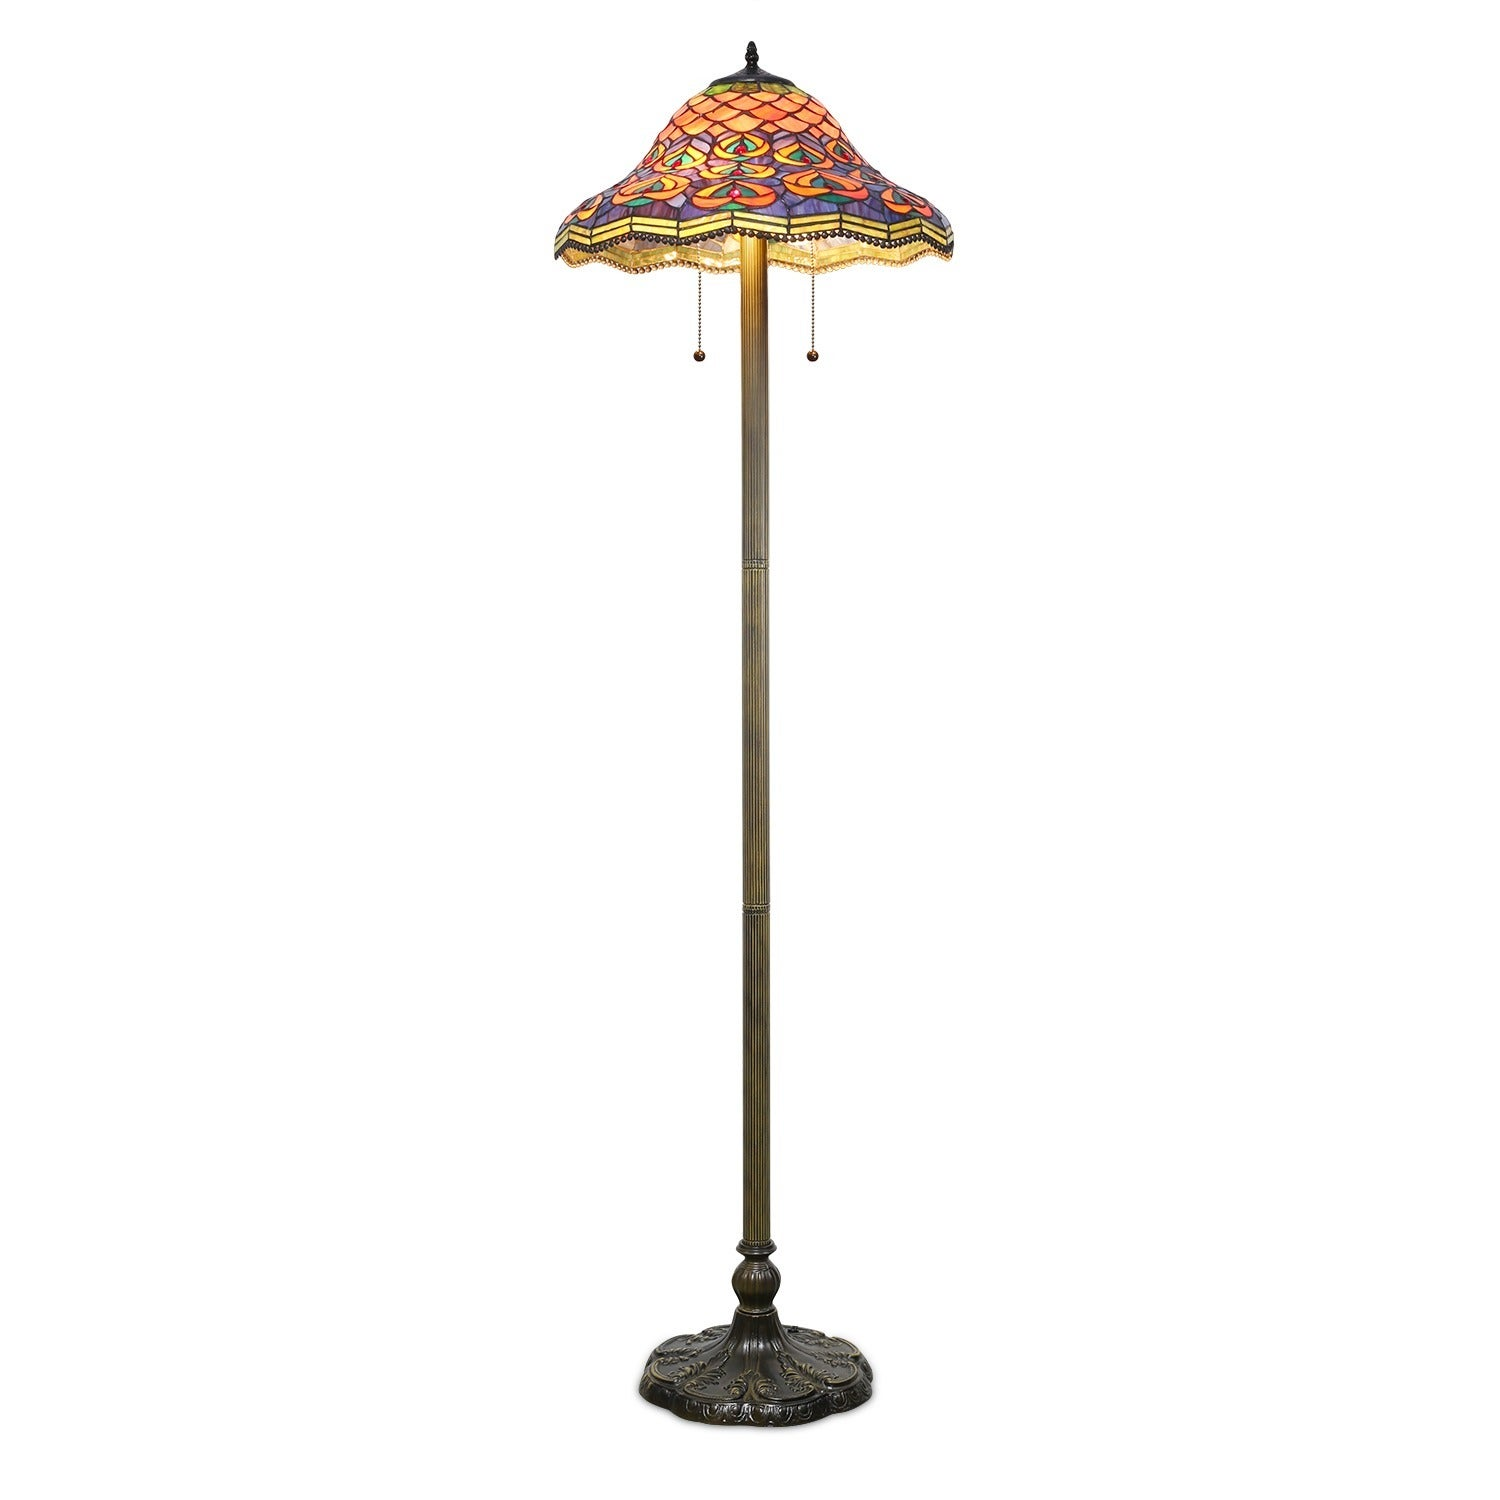 Tiffany & CO Peacock Floor Lamp, Blue (Copper)